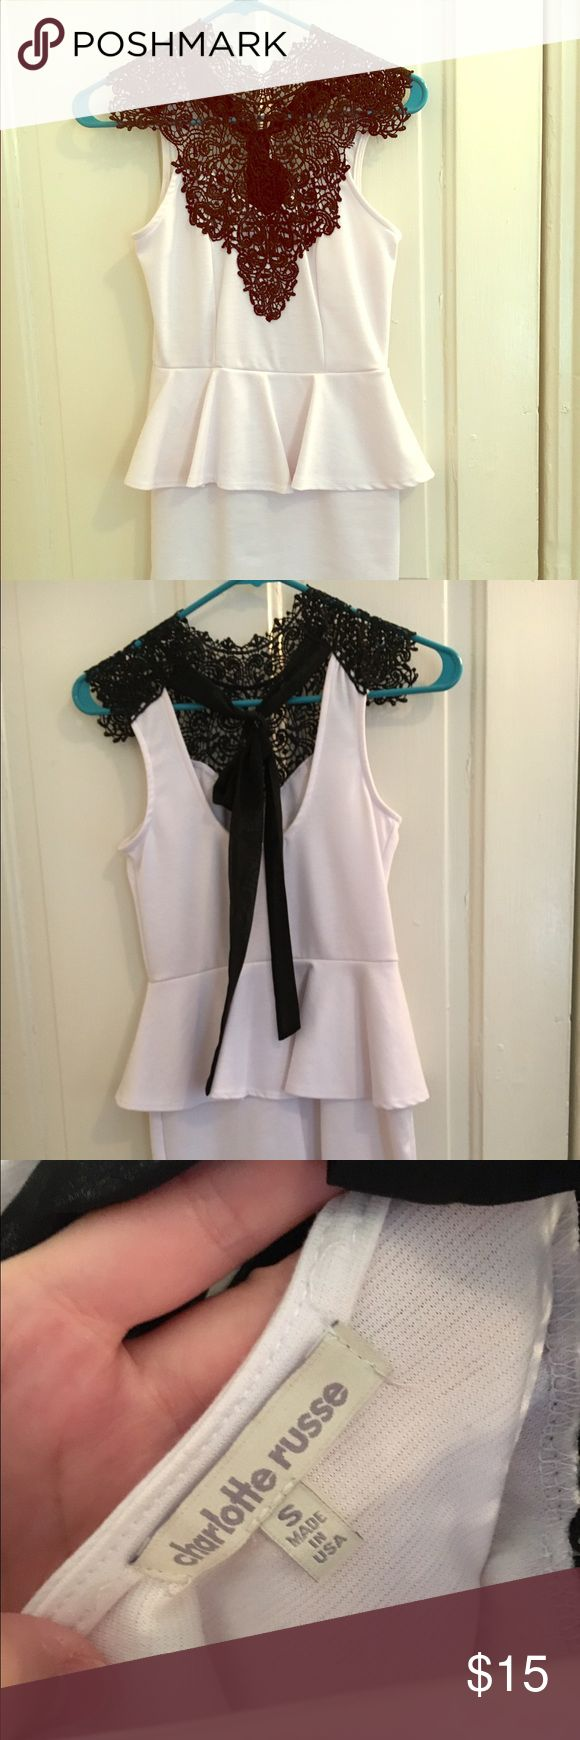 Black and White peplum dress Black lace front on a White peplum dress, tie back in Small Charlotte Russe Dresses Midi